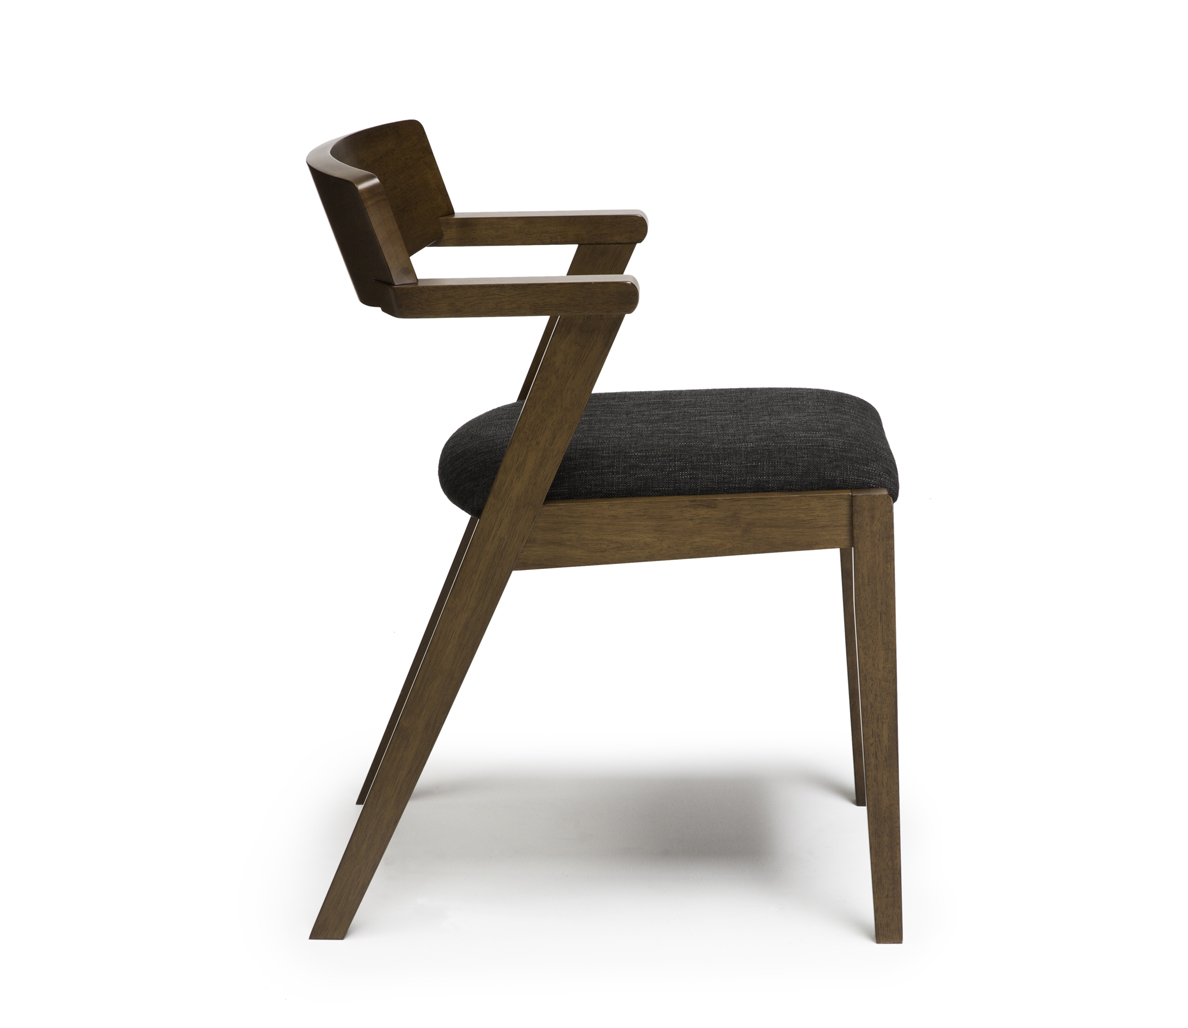 Furniture used for sex hotseat